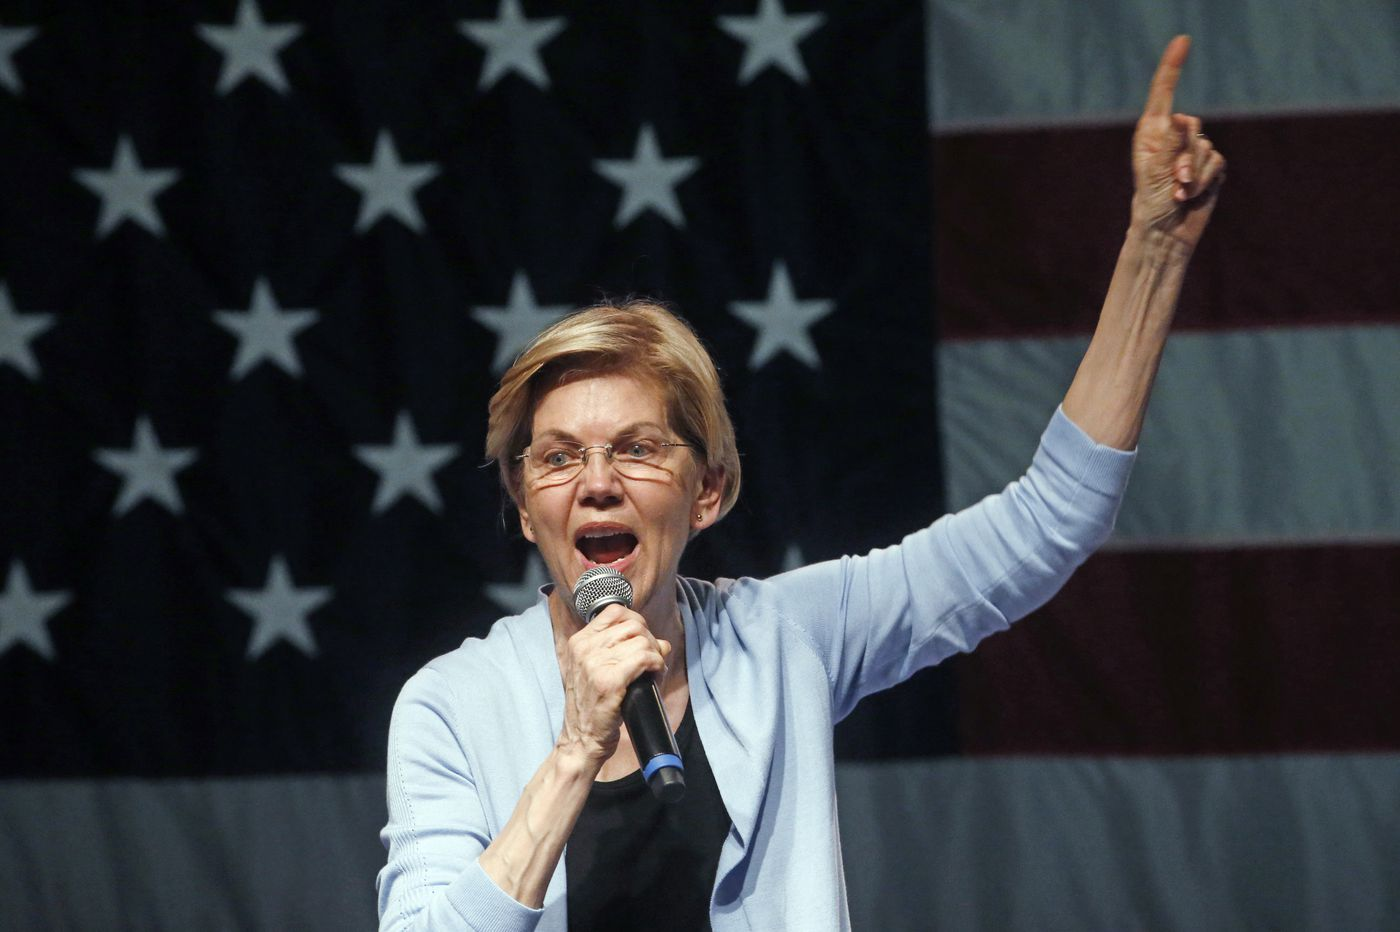 Elizabeth Warren wants Amazon broken up - but still shops there